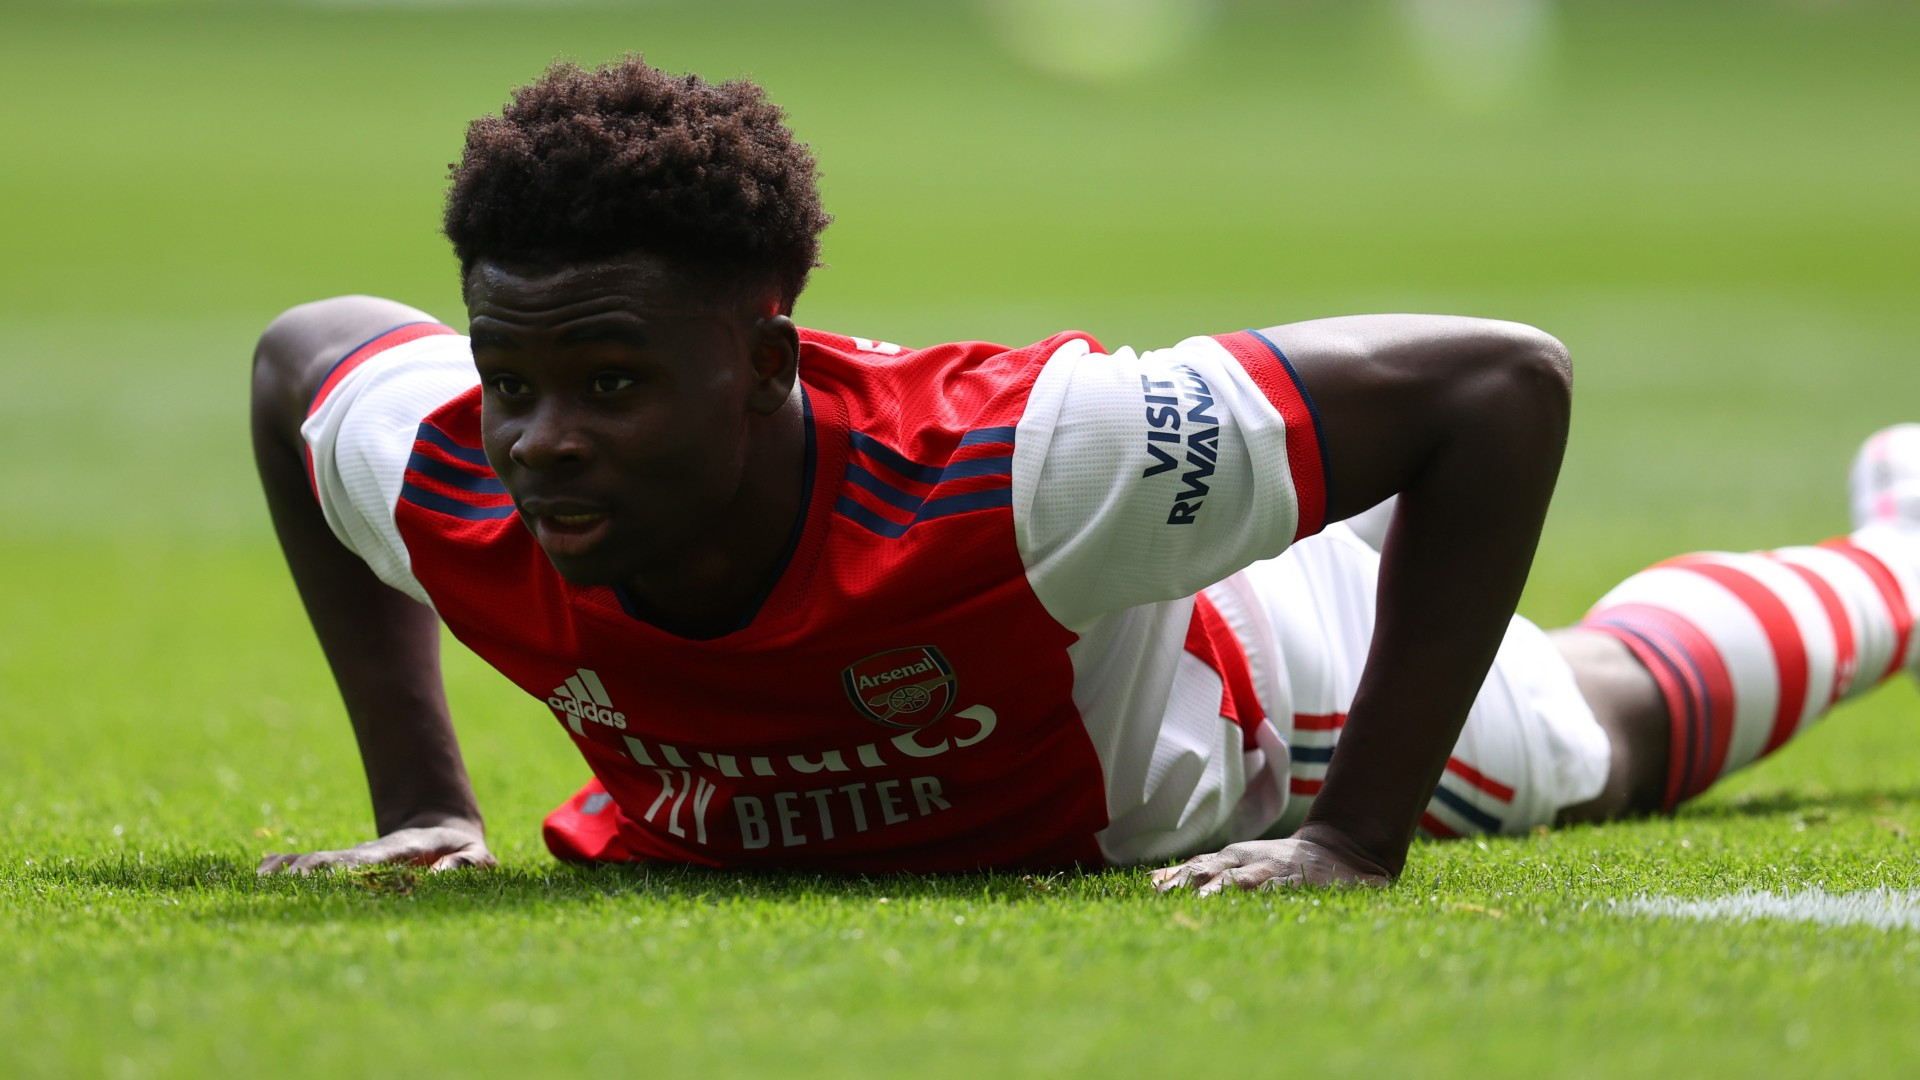 Saka says 'thank you' after ovation from Tottenham fans during Arsenal's pre-season friendly